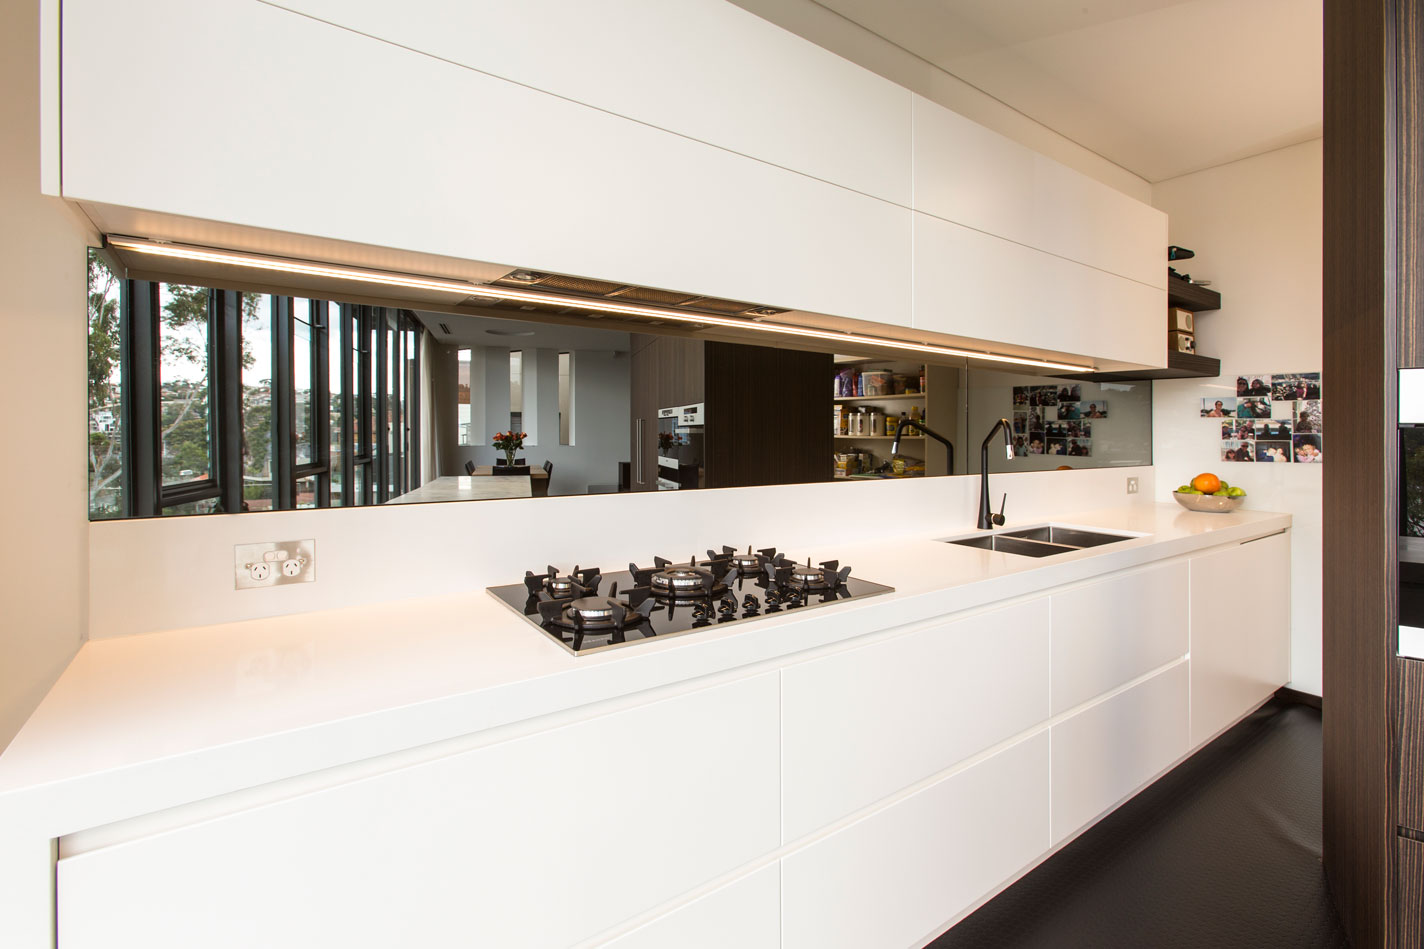 Miele Kitchen Cabinets - Veterinariancolleges